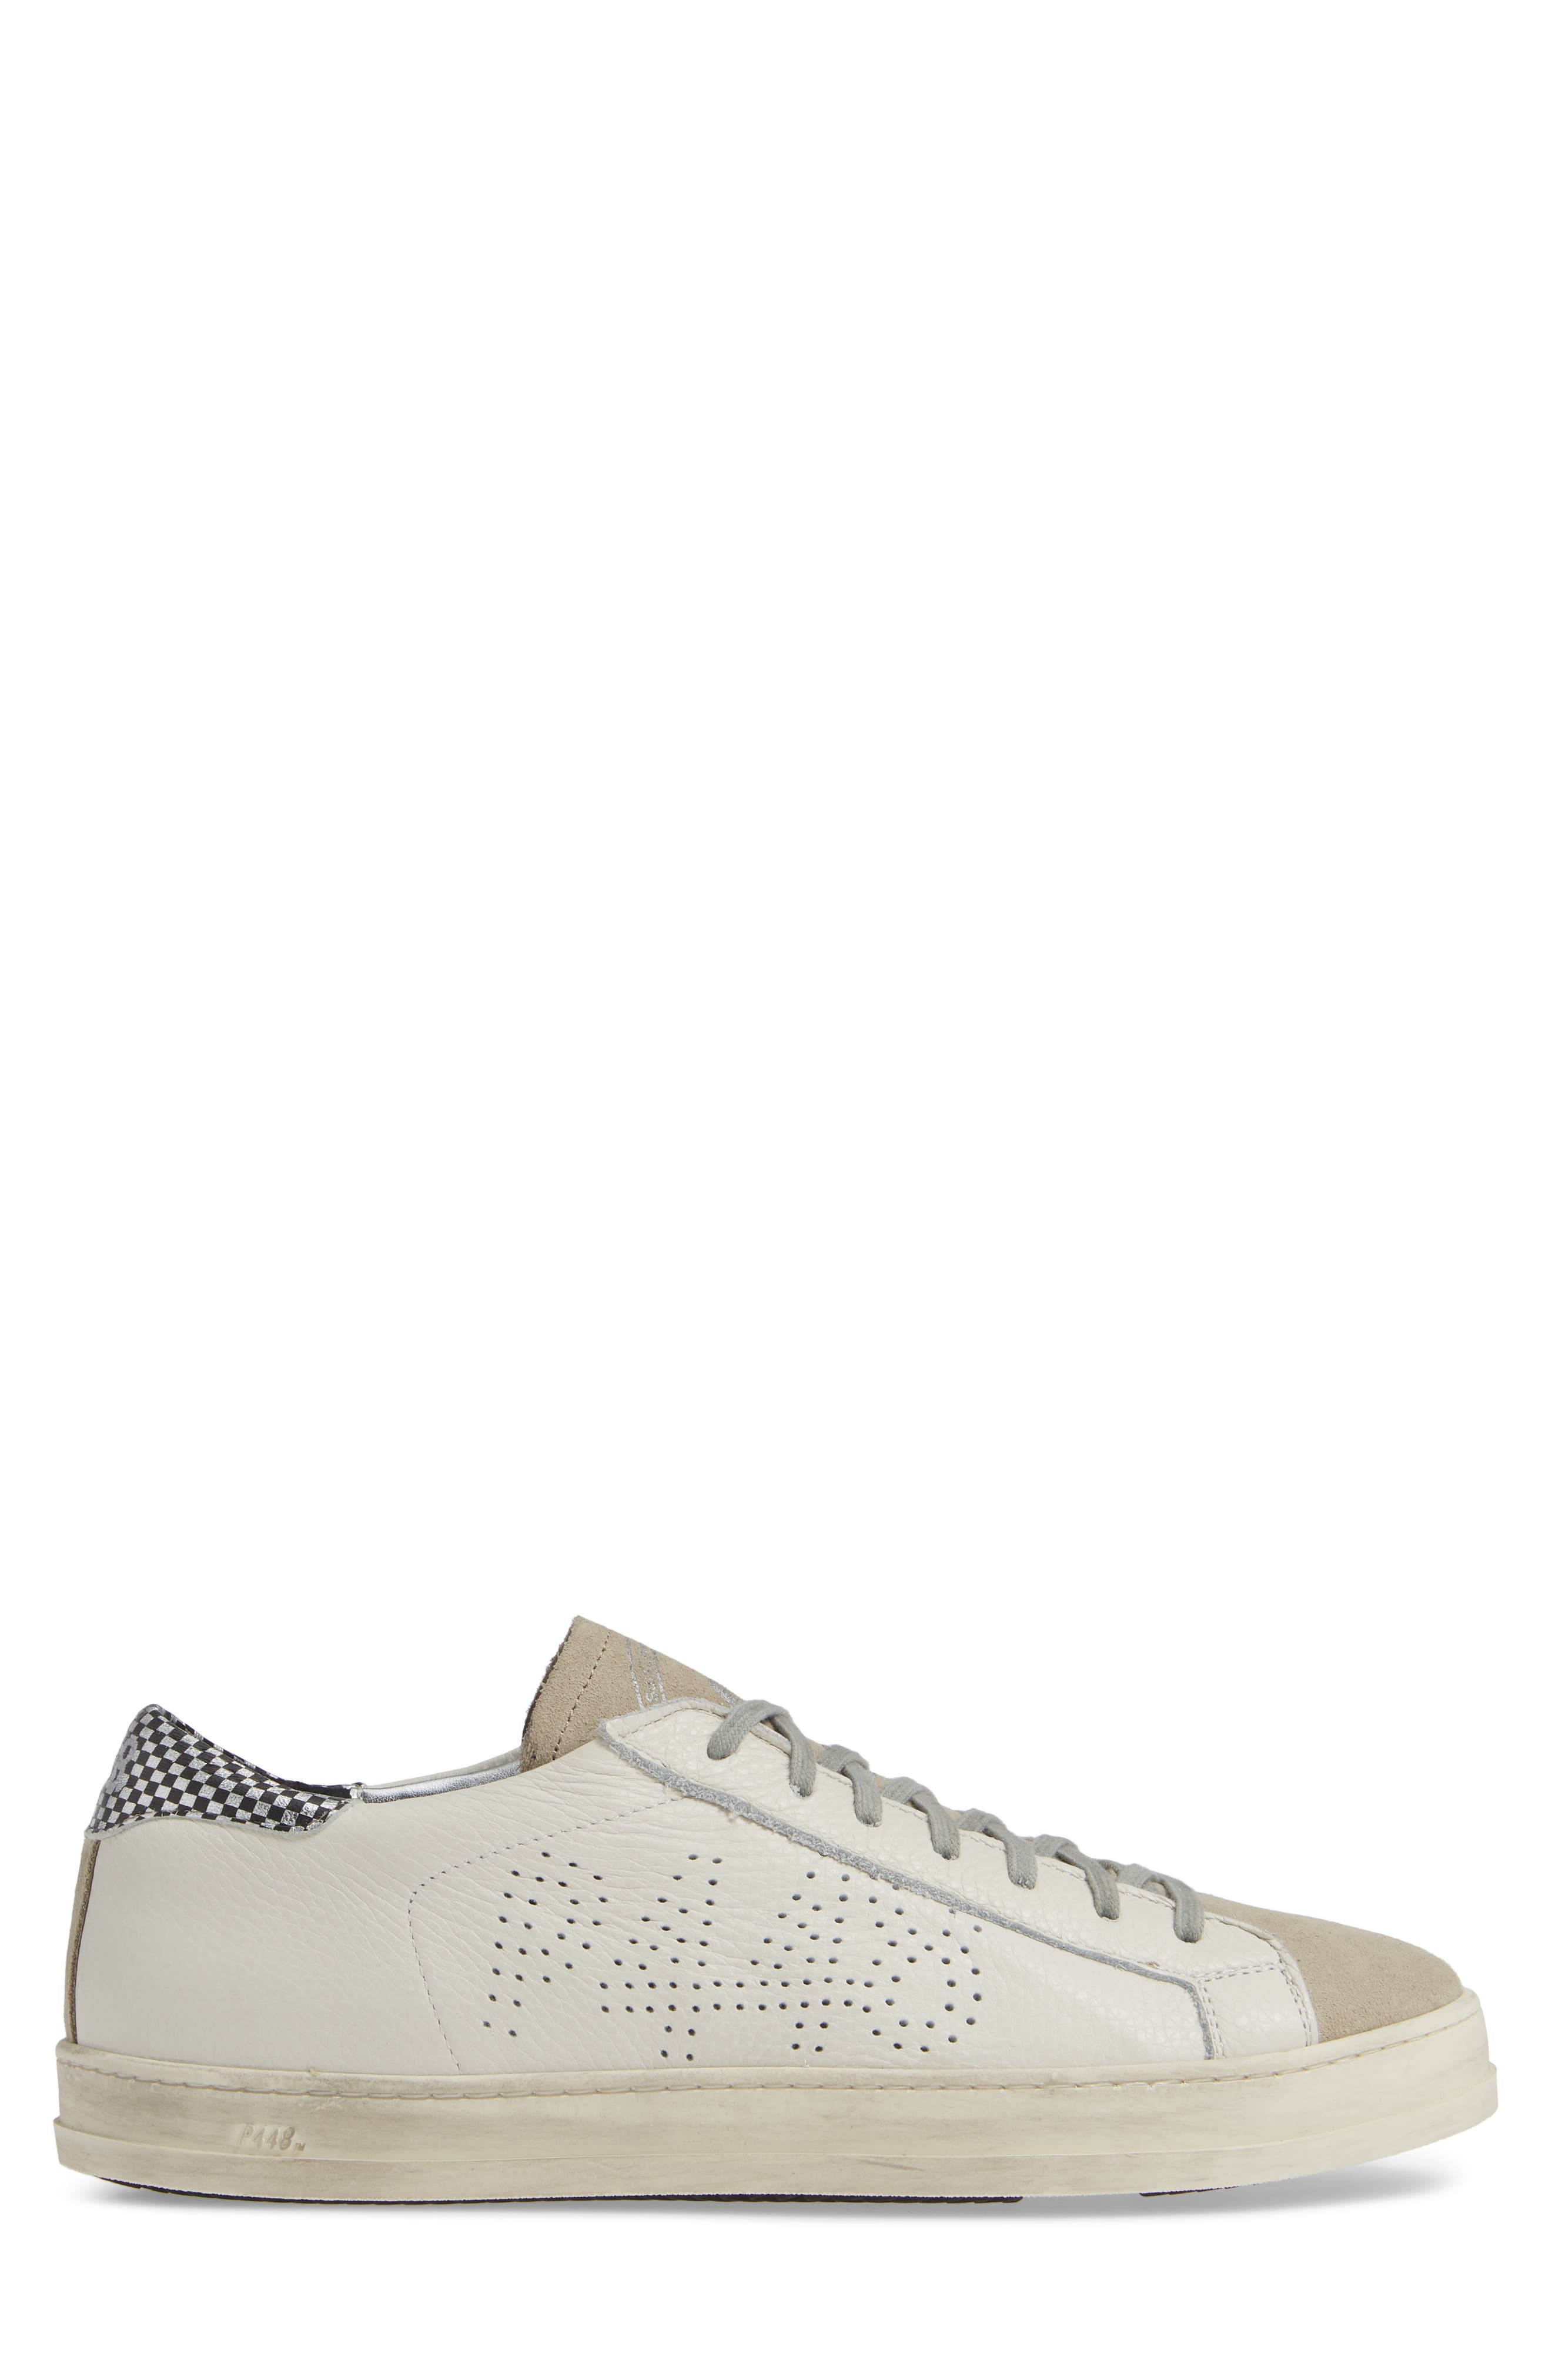 A8John Perforated Sneaker,                             Alternate thumbnail 3, color,                             WHITE/ WHITE